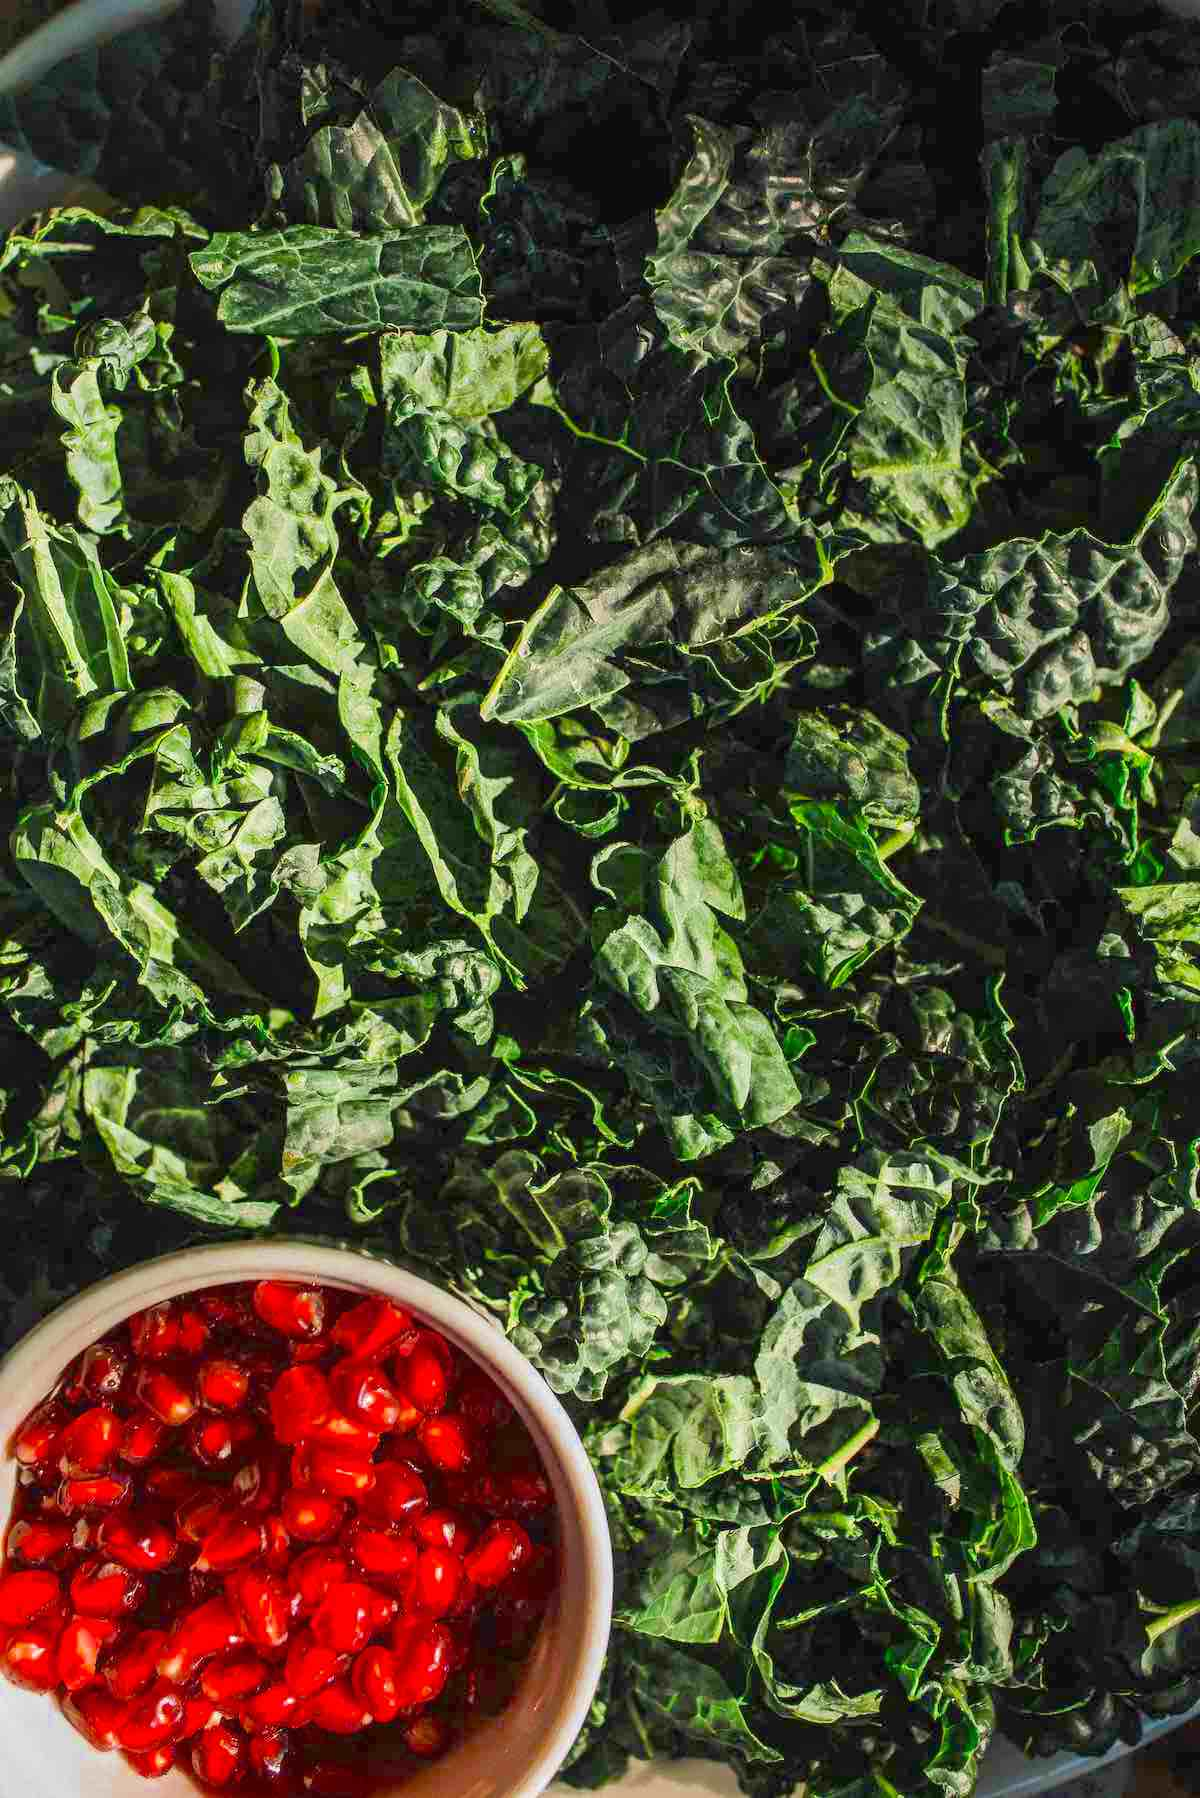 Kale winter greens with a container of pomegranate seeds